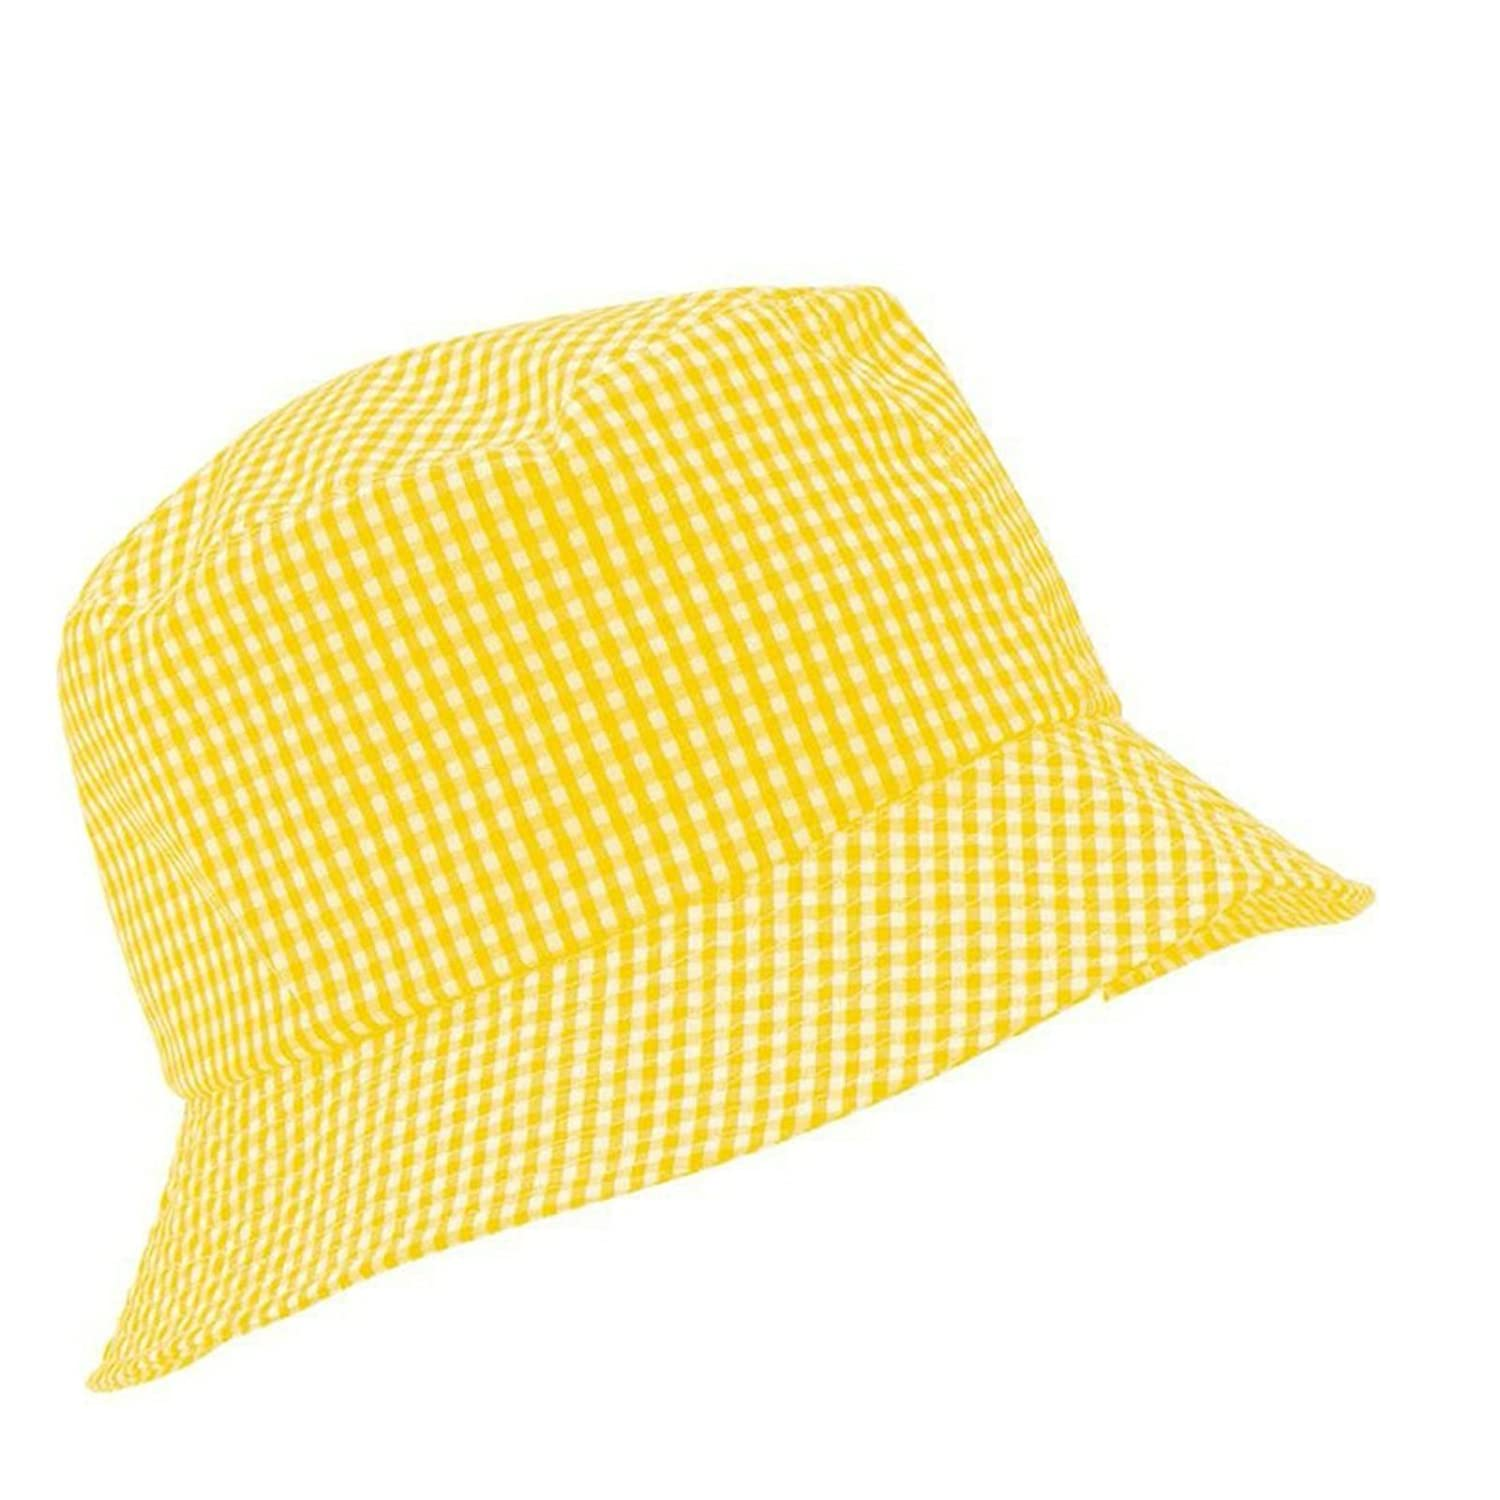 Sun Protection School Summer Kids Cotton Bucket Sun Hat Holidays Outdoors